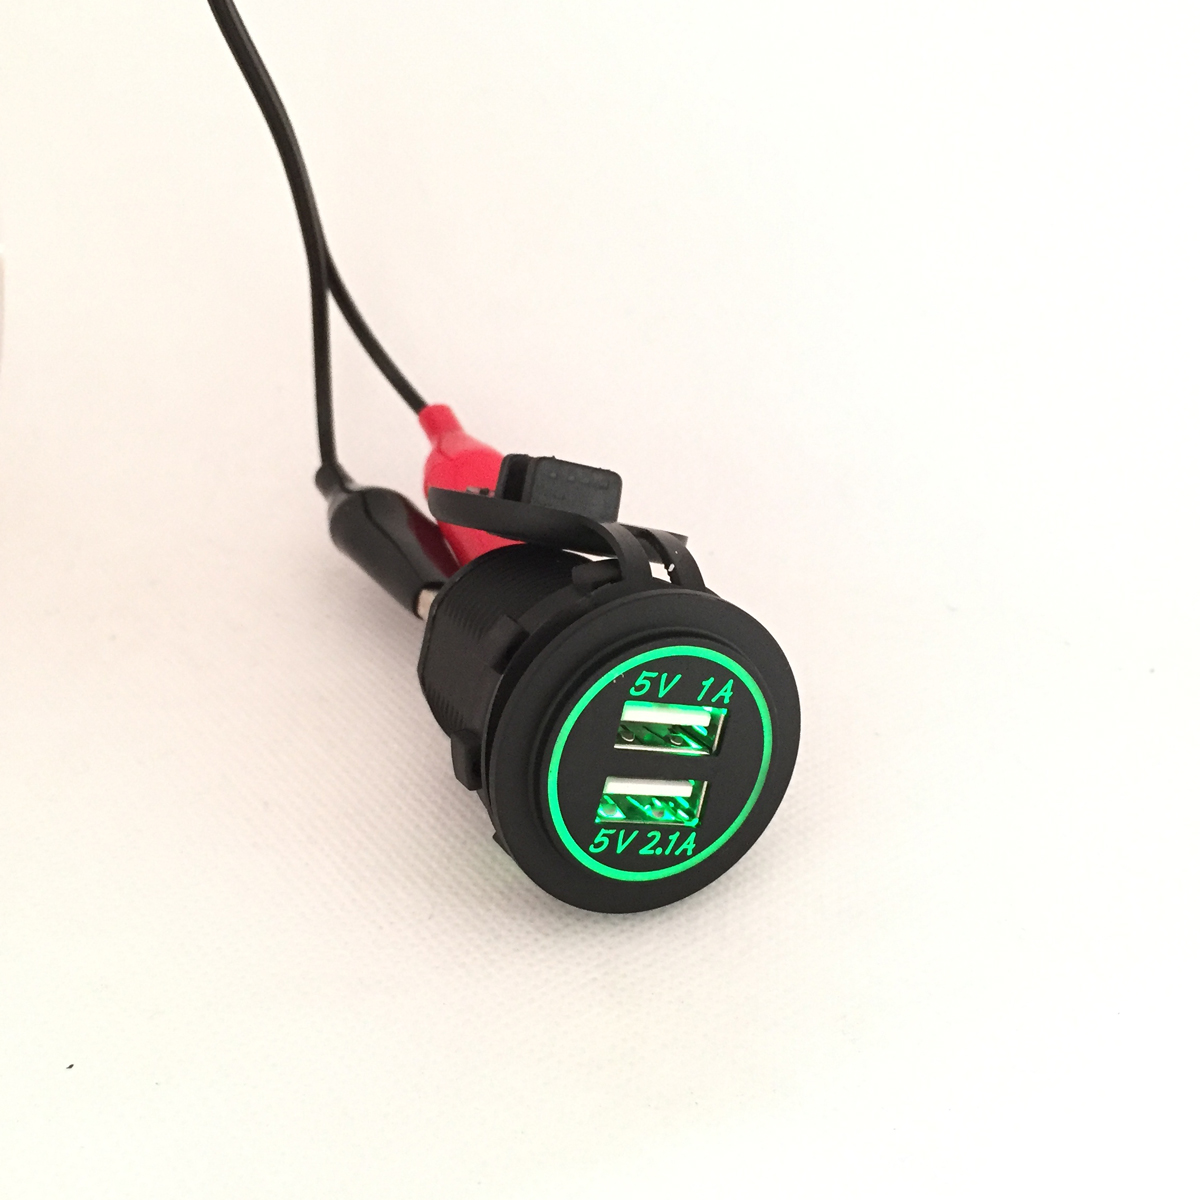 12V 3.1A Waterproof Motorcycle Mobile Phone Dual USB Charger Green LED Voltmeter